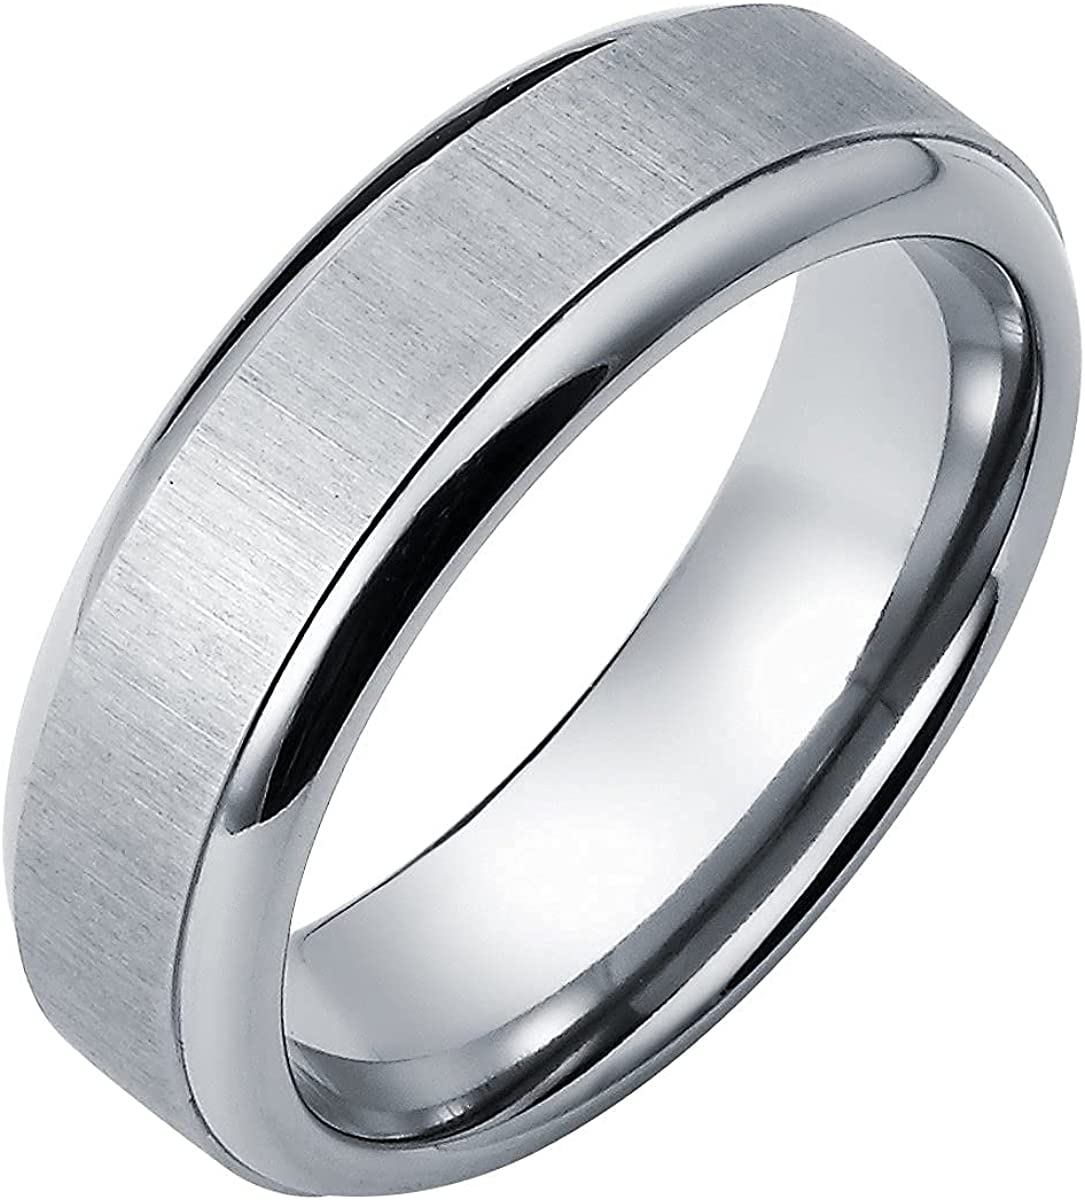 Titanium 7mm Comfort Fit Wedding Band Ring with Brushed Finish Center